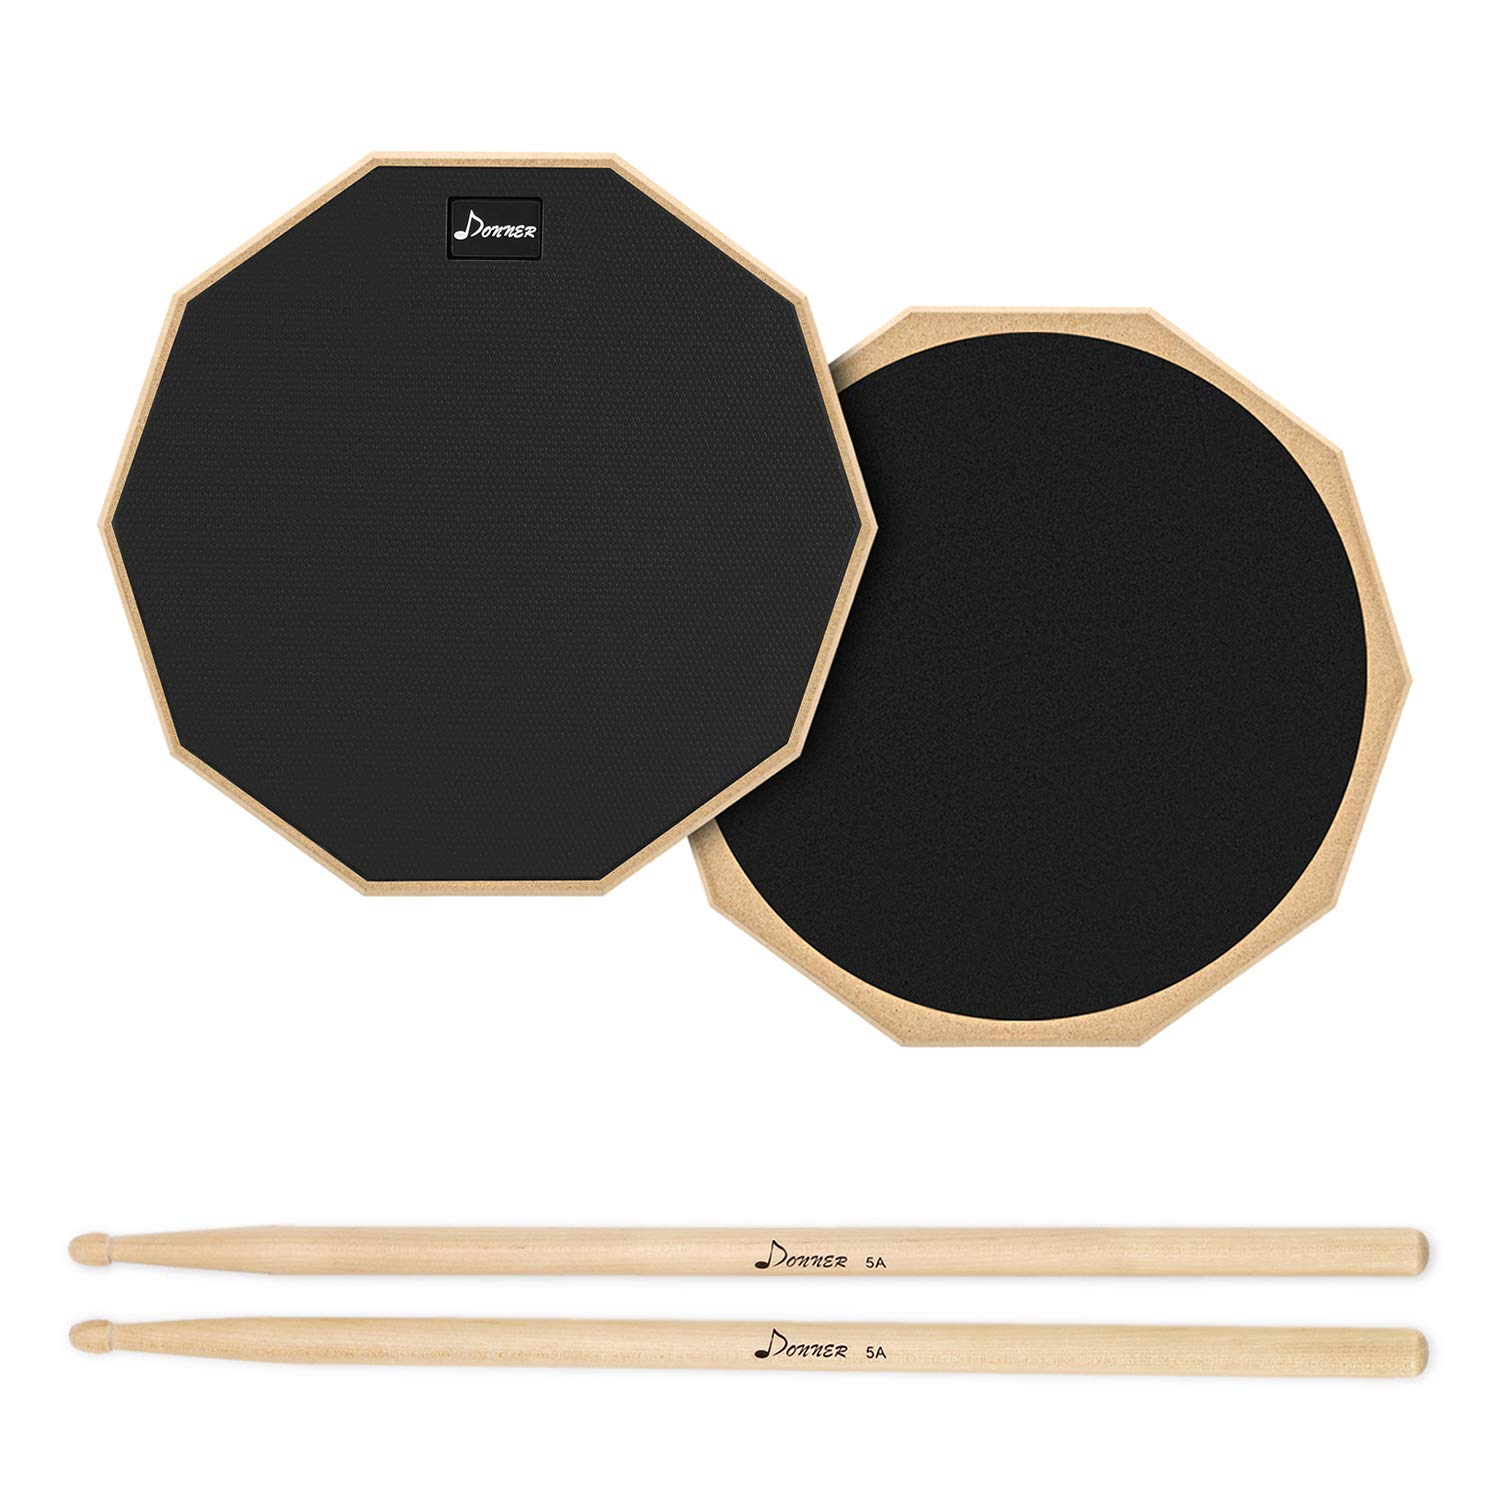 Donner Drum Practice Pad, 8 Inch Double Sided Silent Drum Pad With Drumsticks, Black